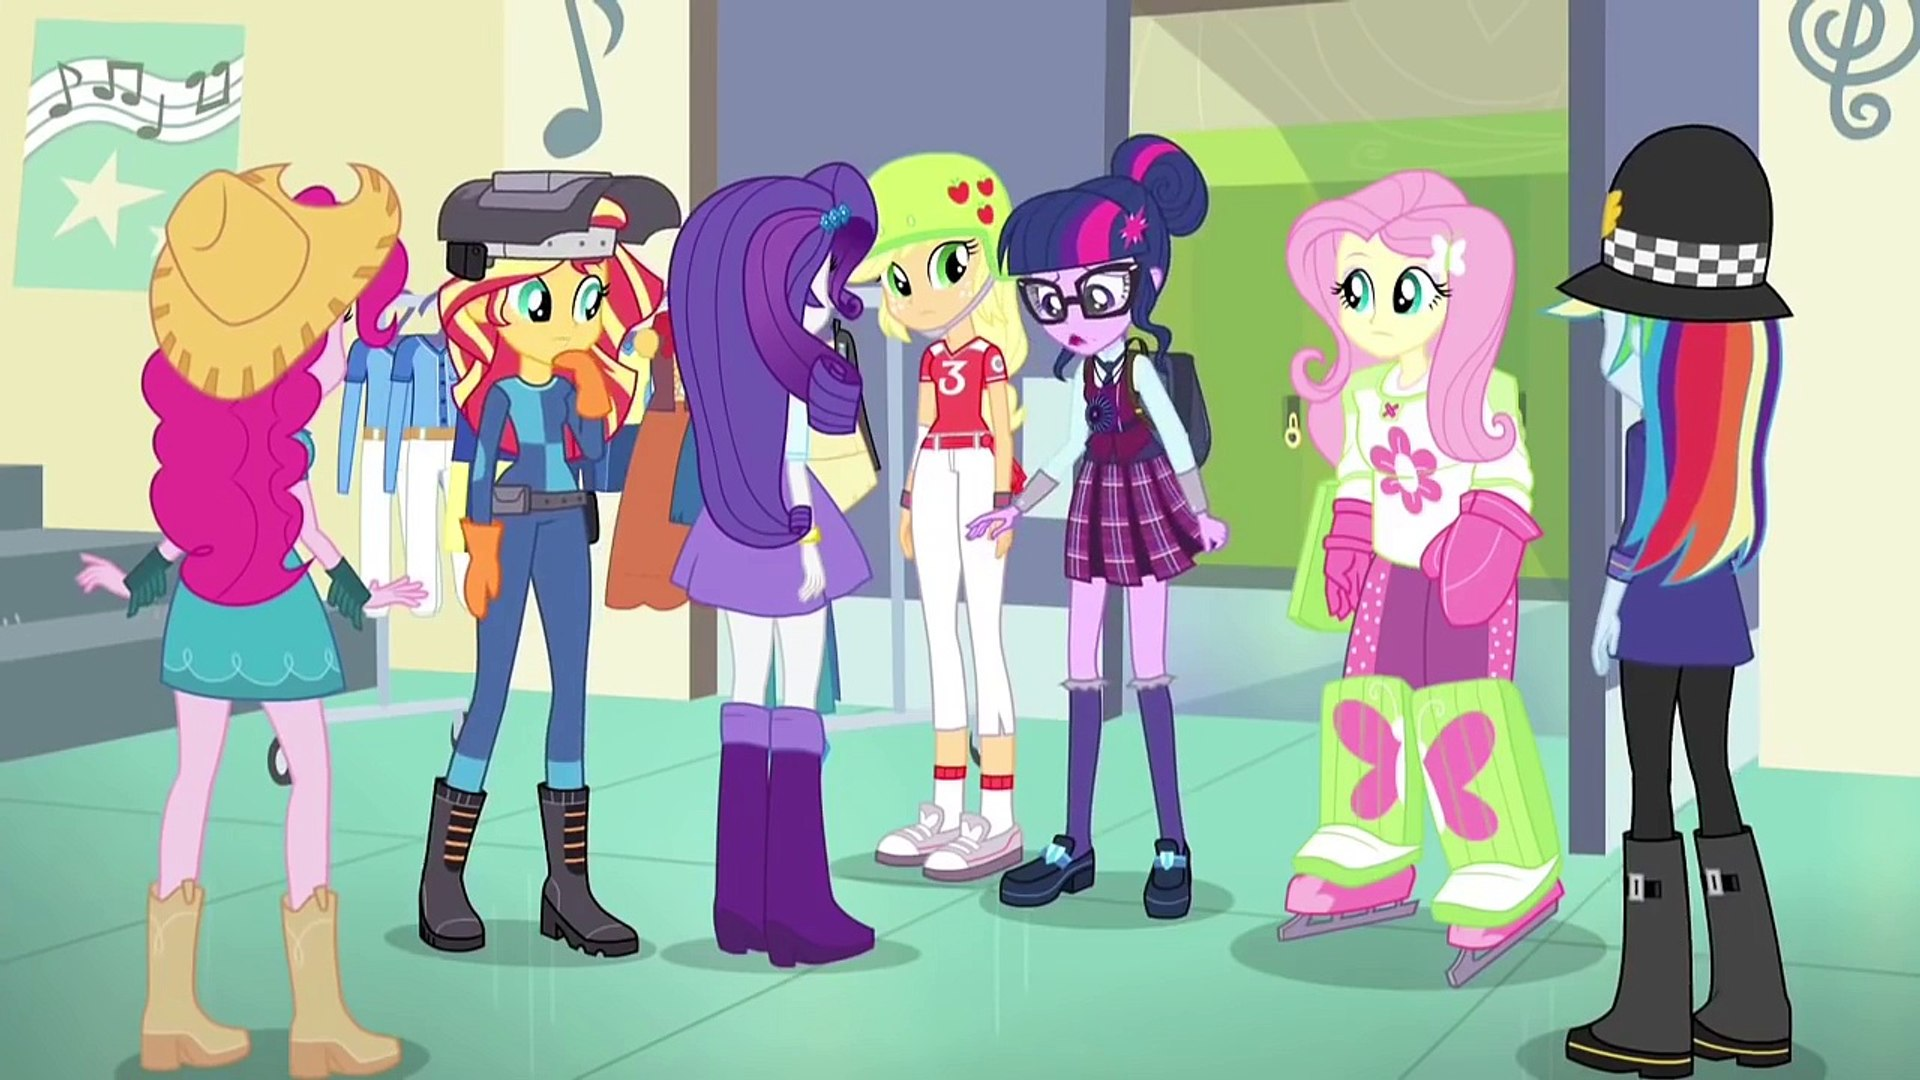 [Rus Voice]MLP:Equestria Girls: Friendship Games- Review # 1 На Русском